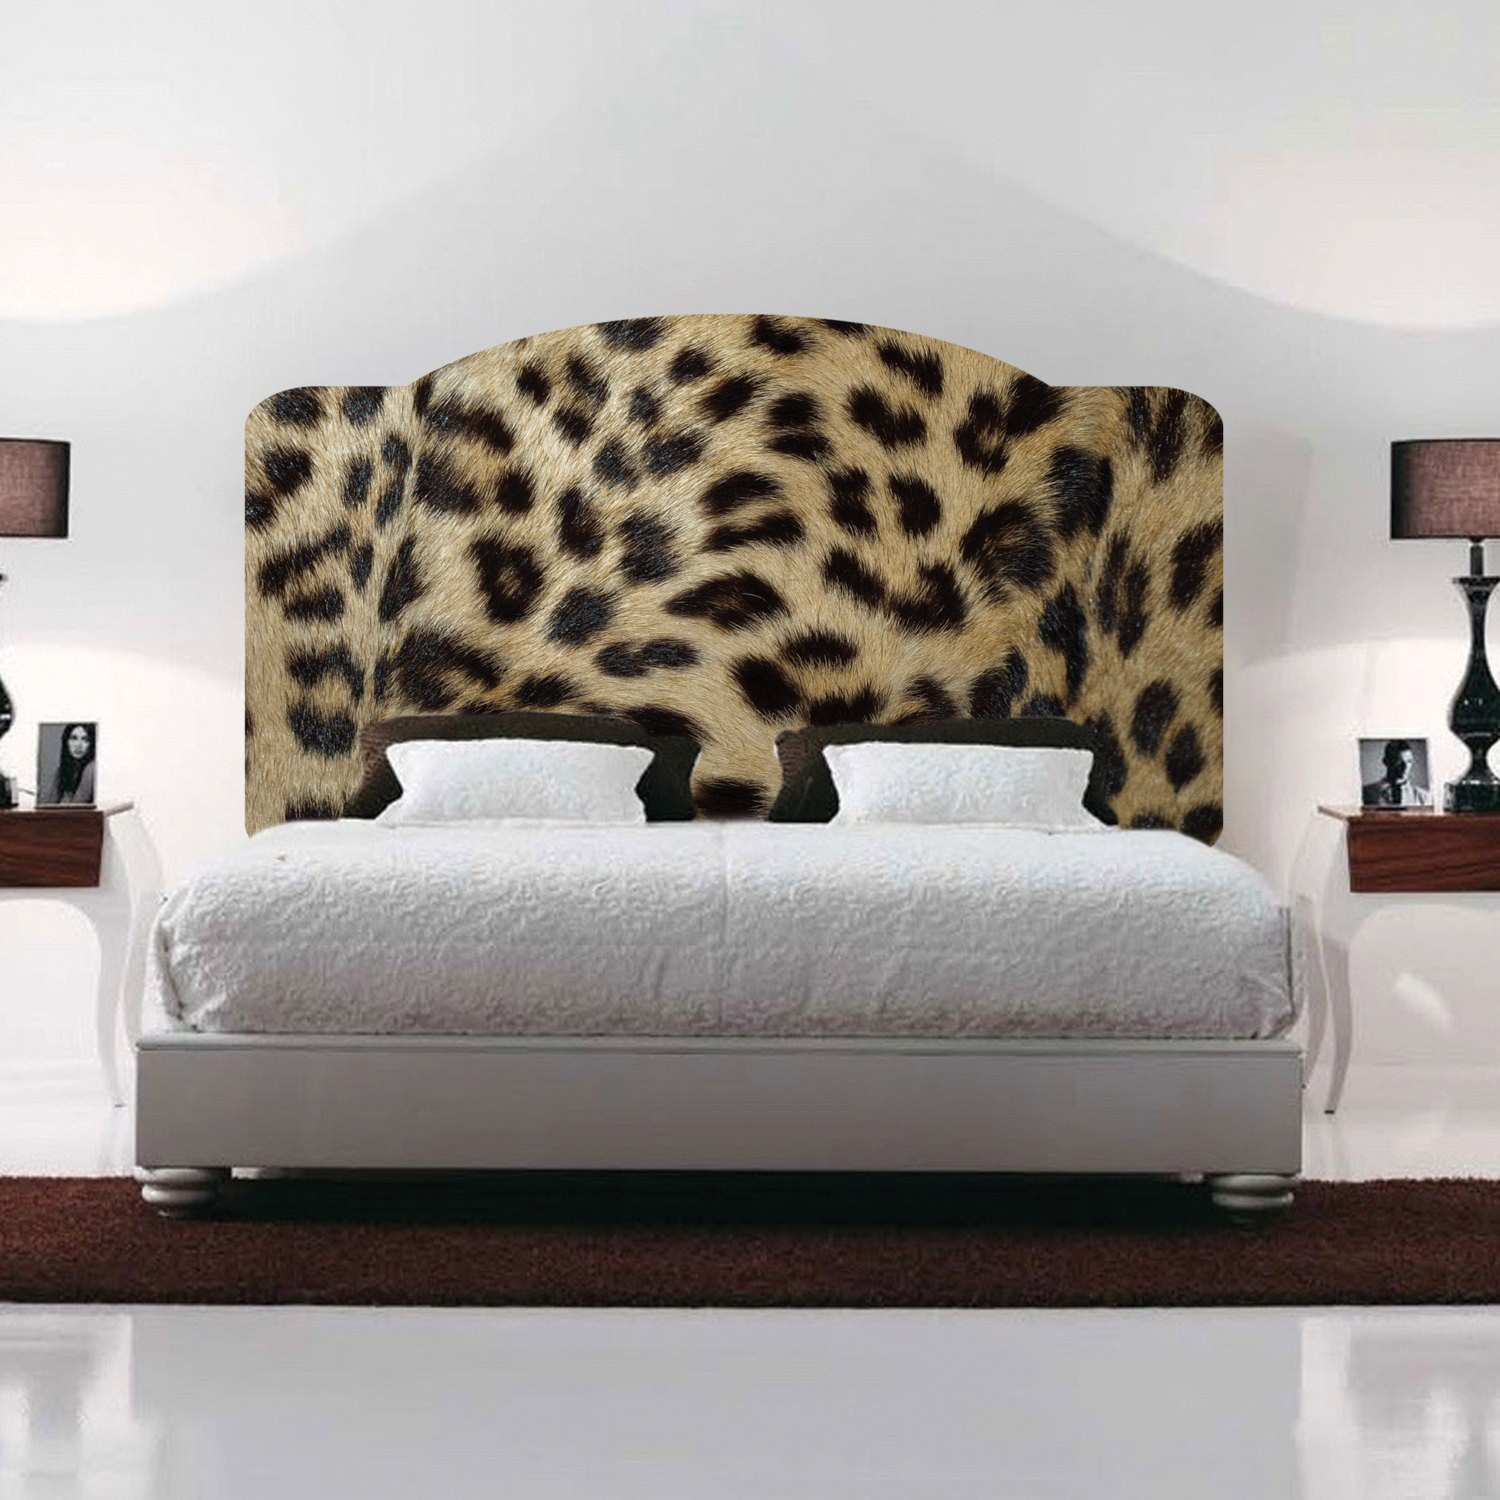 Leopard Print Decals for Walls Inspirational Leopard Print Wall Stickers [thronefield]